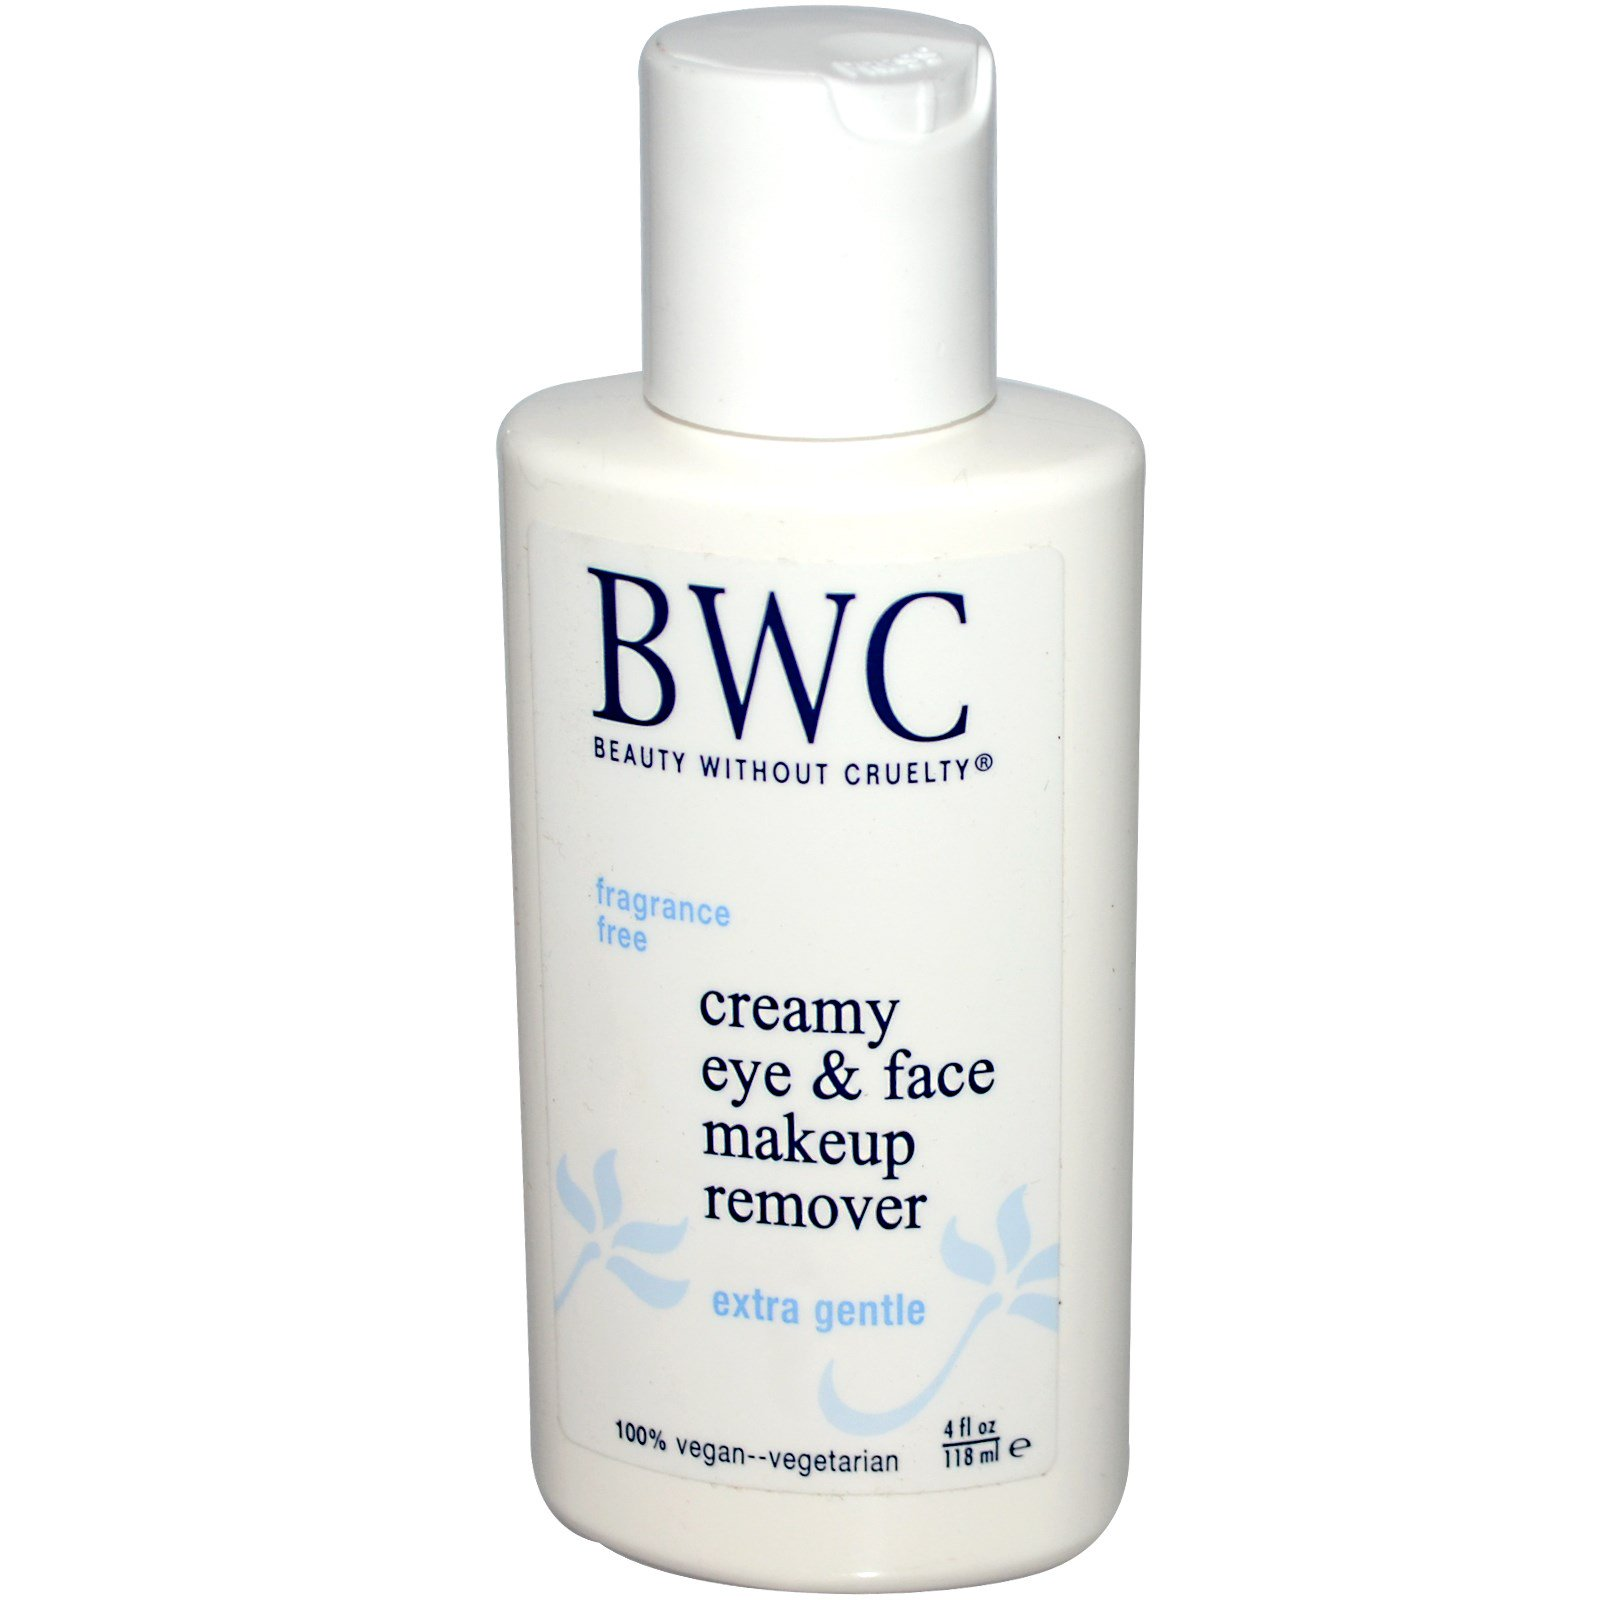 Bwc Fragrance Free Creamy Eye And Face Makeup Remover - 4 Oz, 6 Pack SkinFood - Platinum Grape Cell Emulsion - 130ml/4.39oz